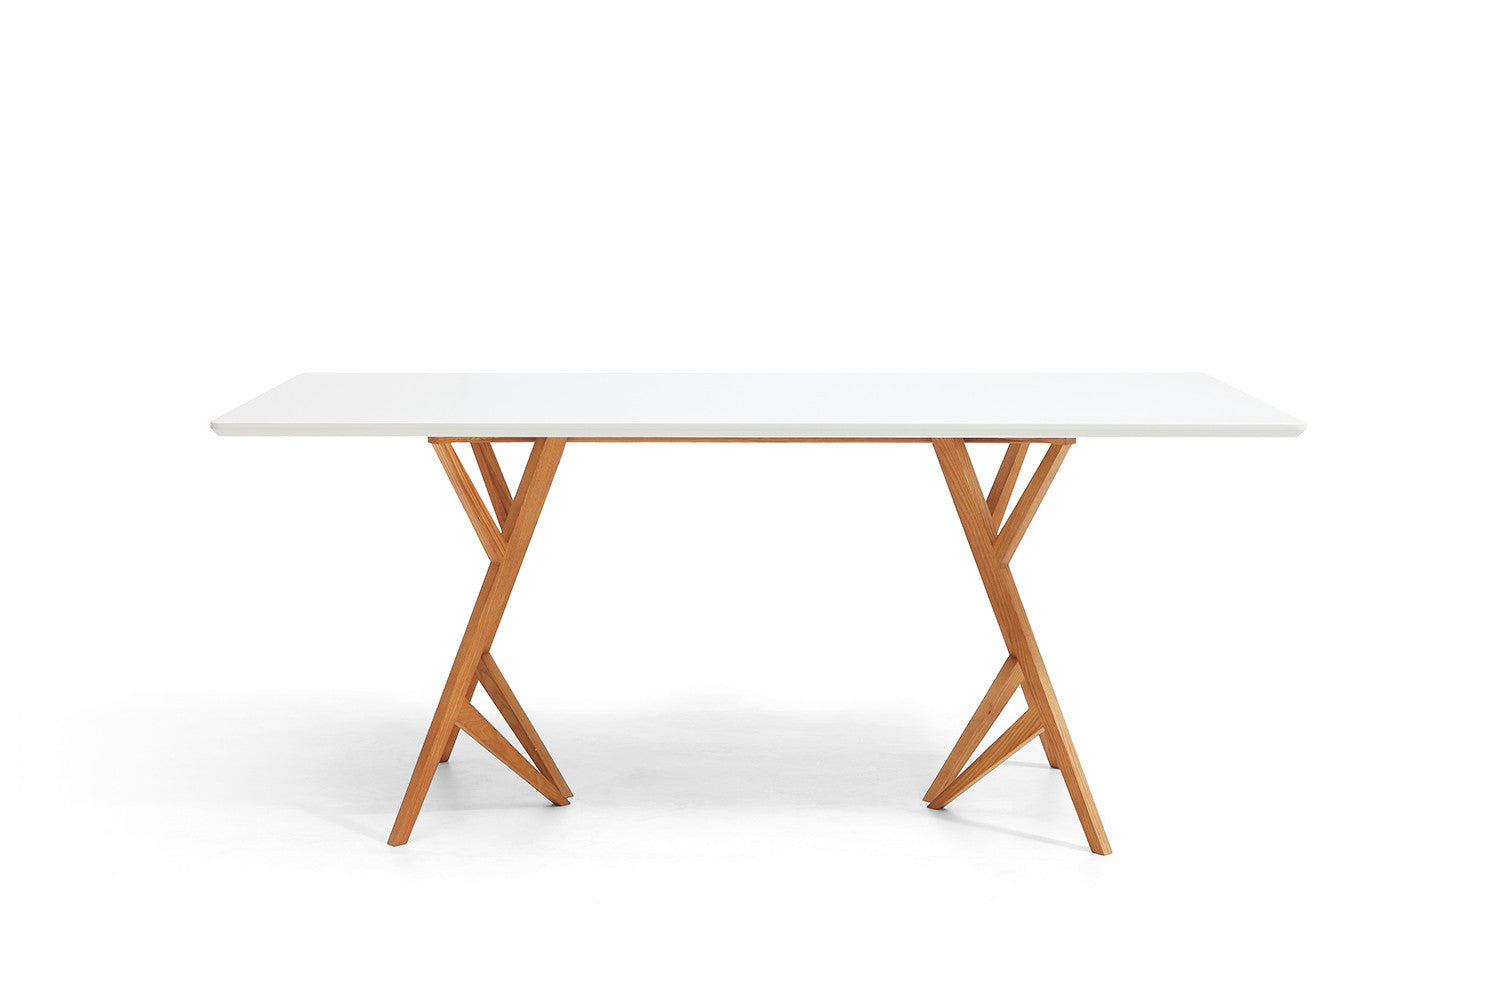 Table de salle manger design scandinave vispa dewarens for Table cuisine blanche bois